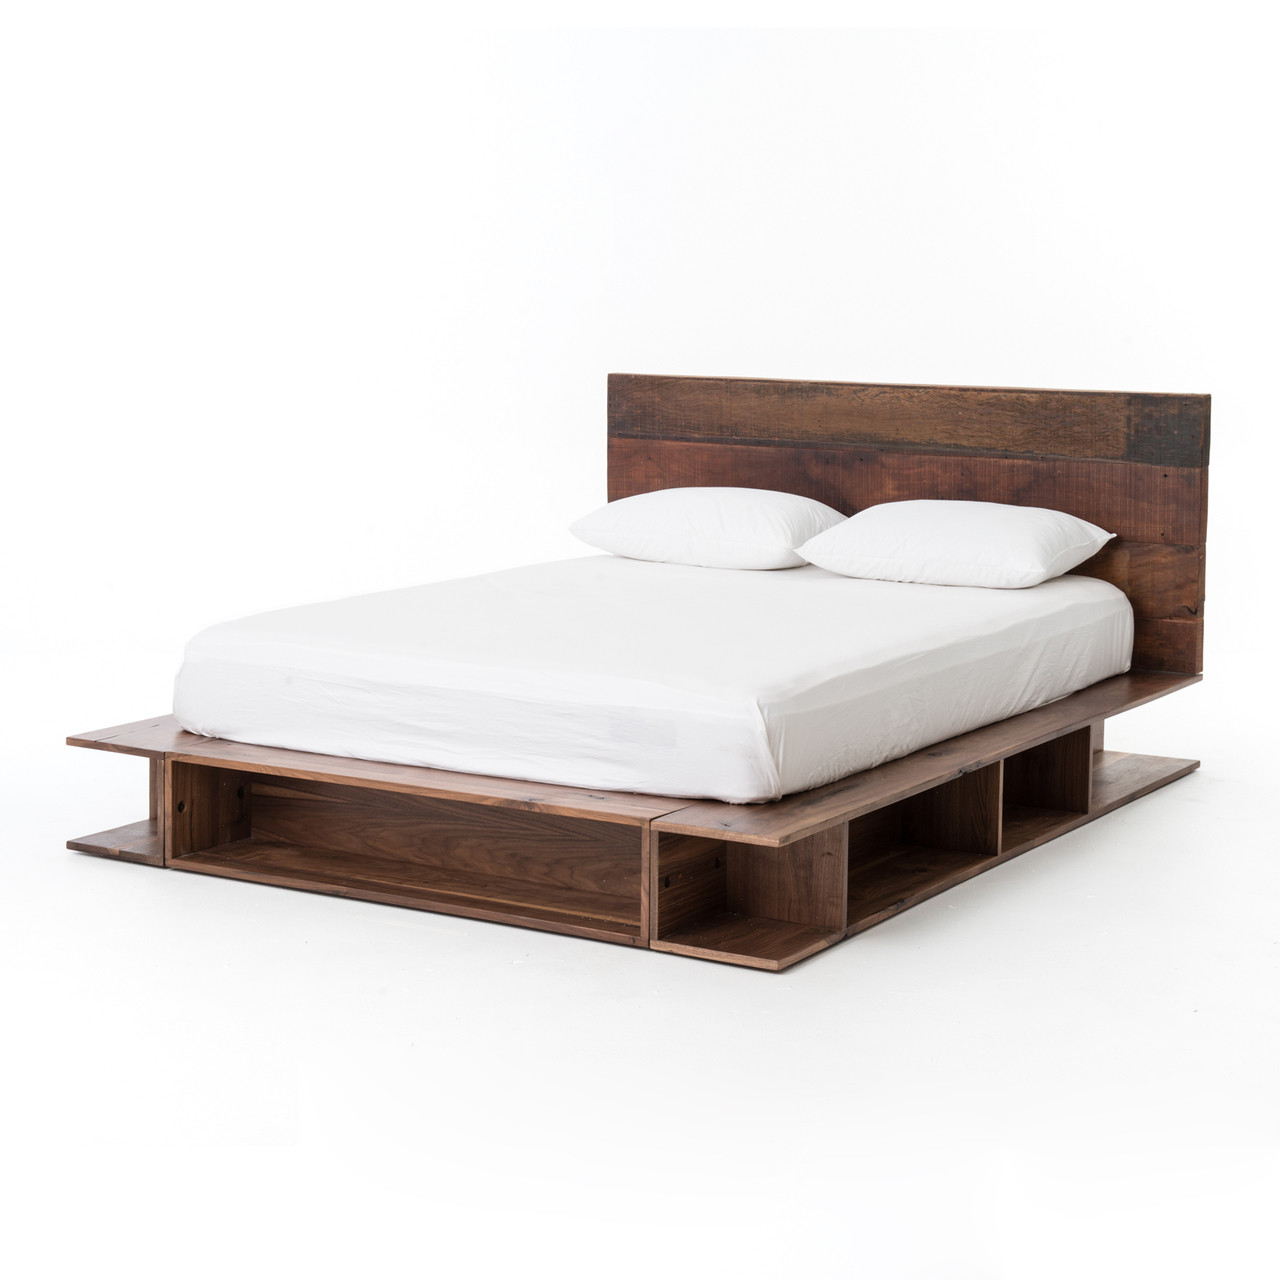 French Platform Bed